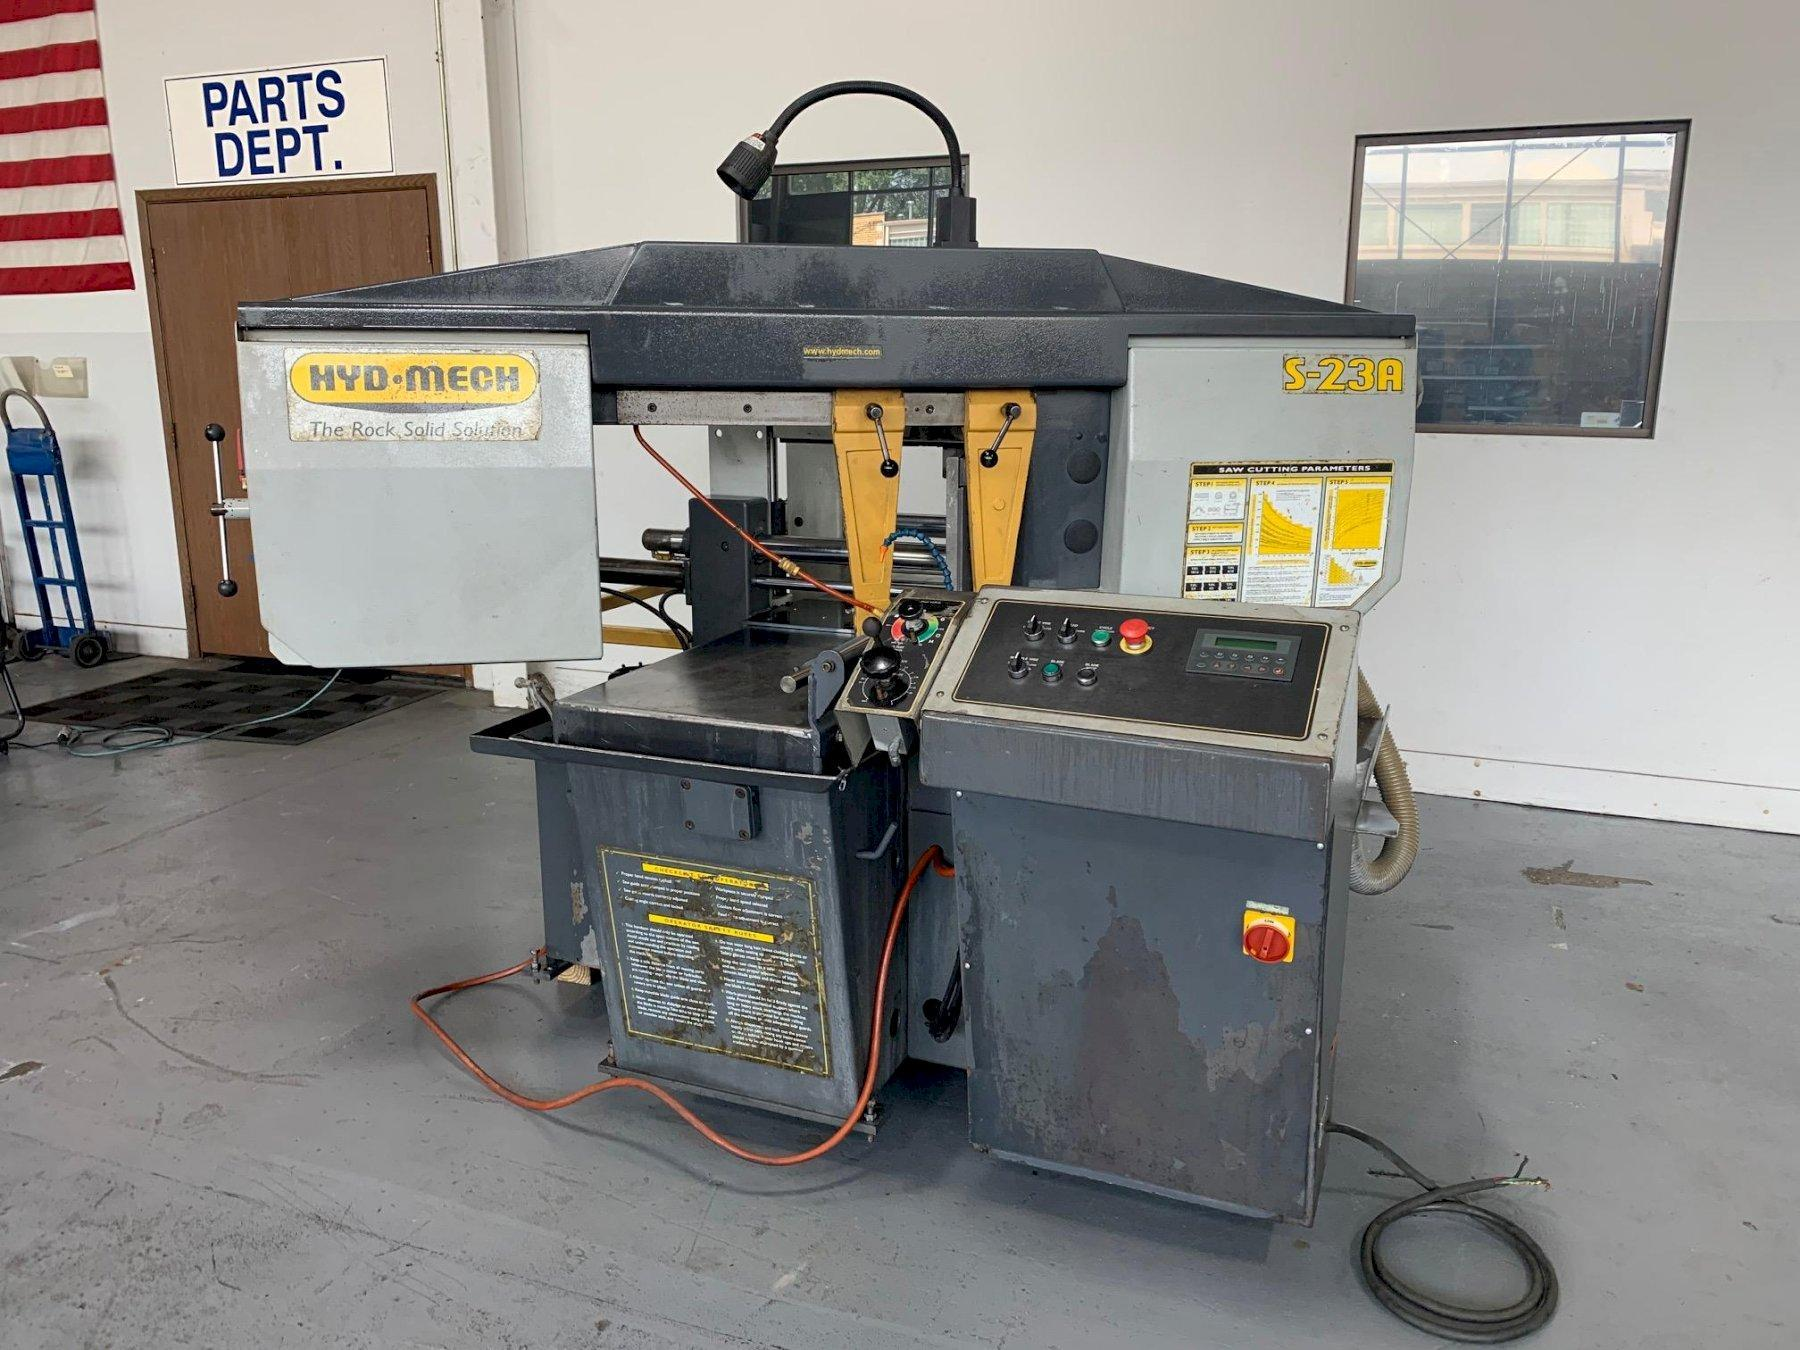 """USED HYD-MECH 16"""" X 18"""" FULLY AUTOMATIC MITERING HORIZONTAL BANDSAW MODEL S-23A, Stock no. 10682, Year 2005"""